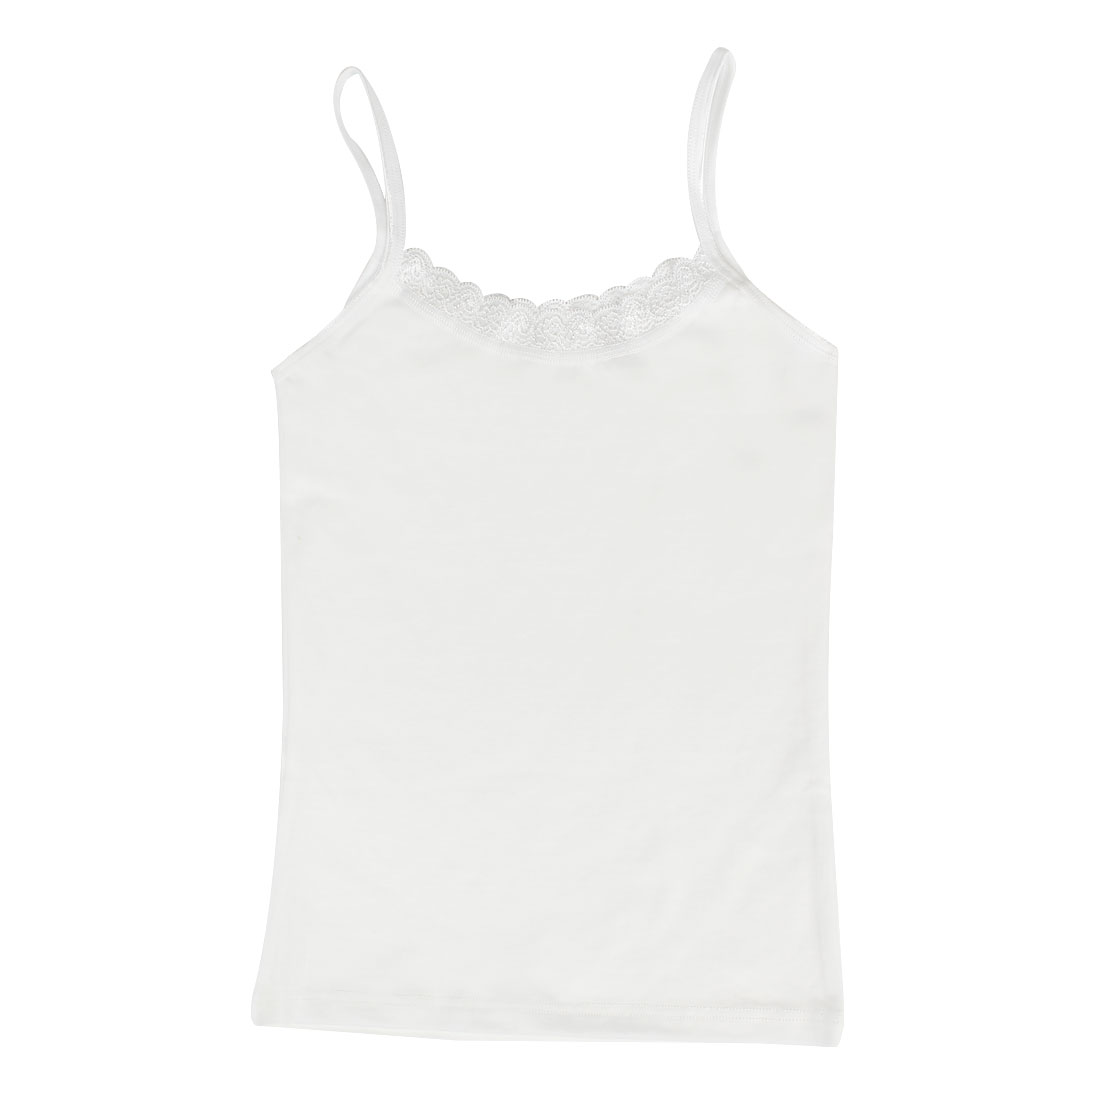 Women Close Fitting Solid White Stretchy Slip Tank Top XS